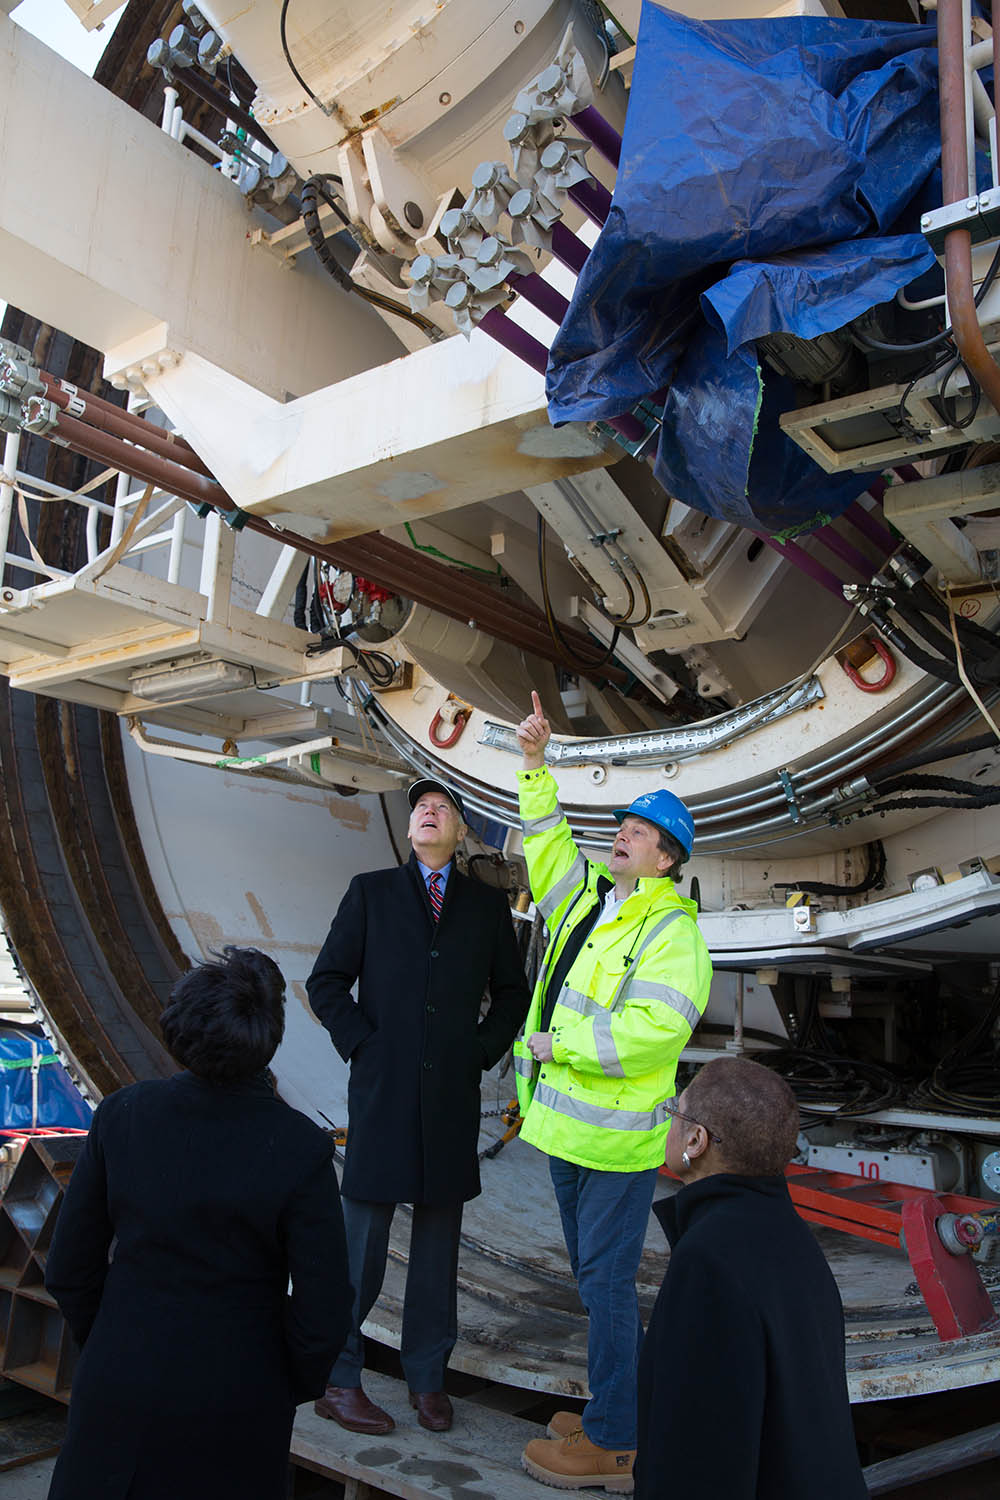 Vice President Joe Biden tours the Anacostia Tunnel Project